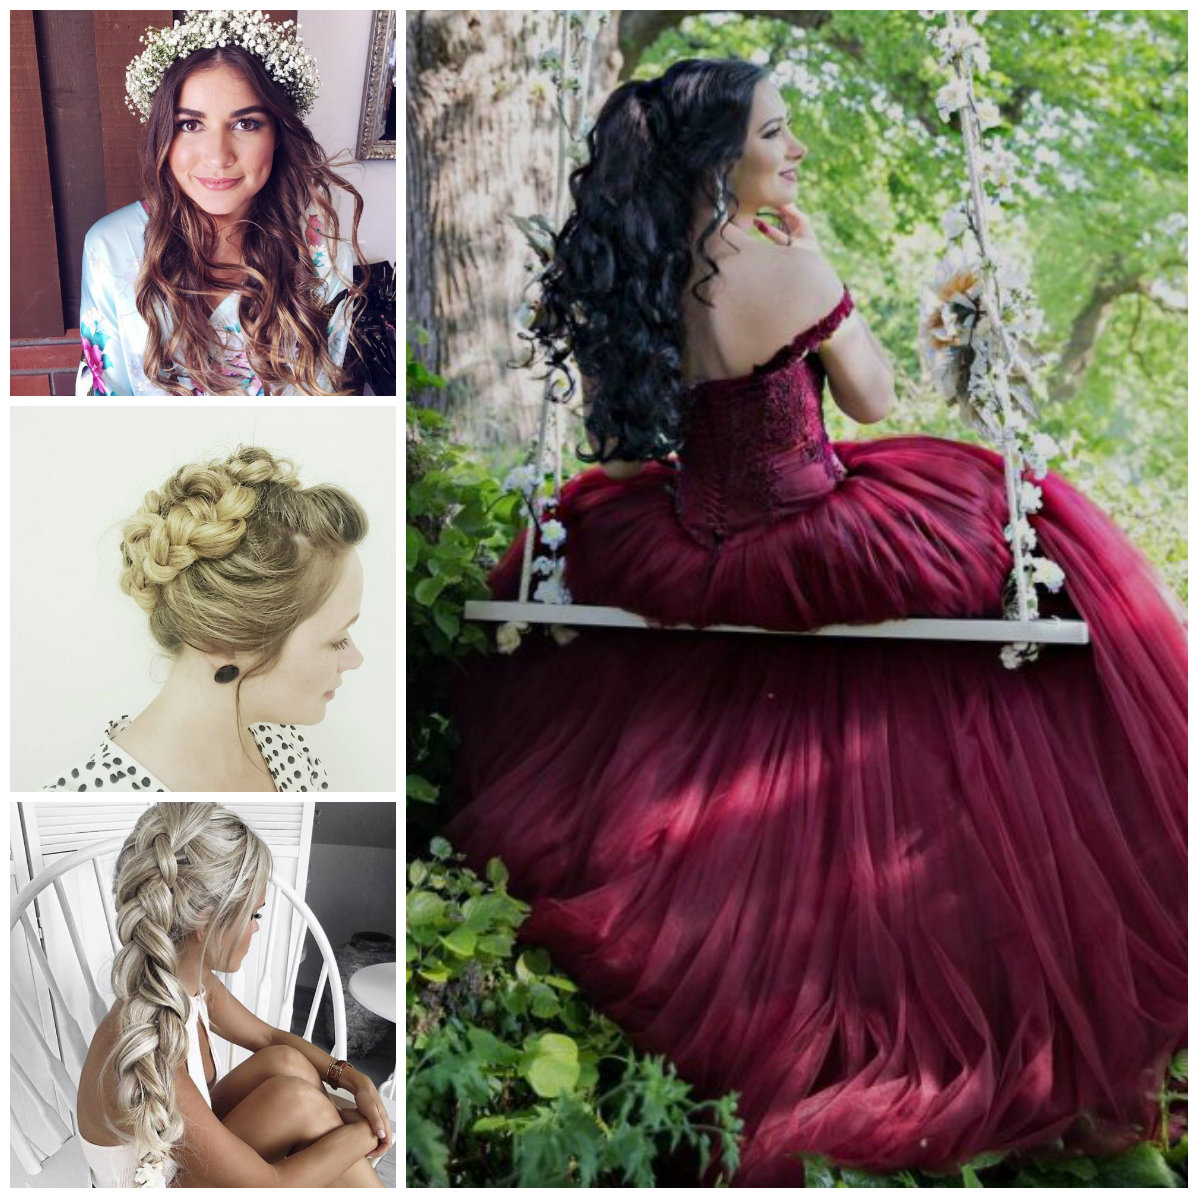 2017 Prom Hairstyles Ideas for Long Hair | 2017 Haircuts ...